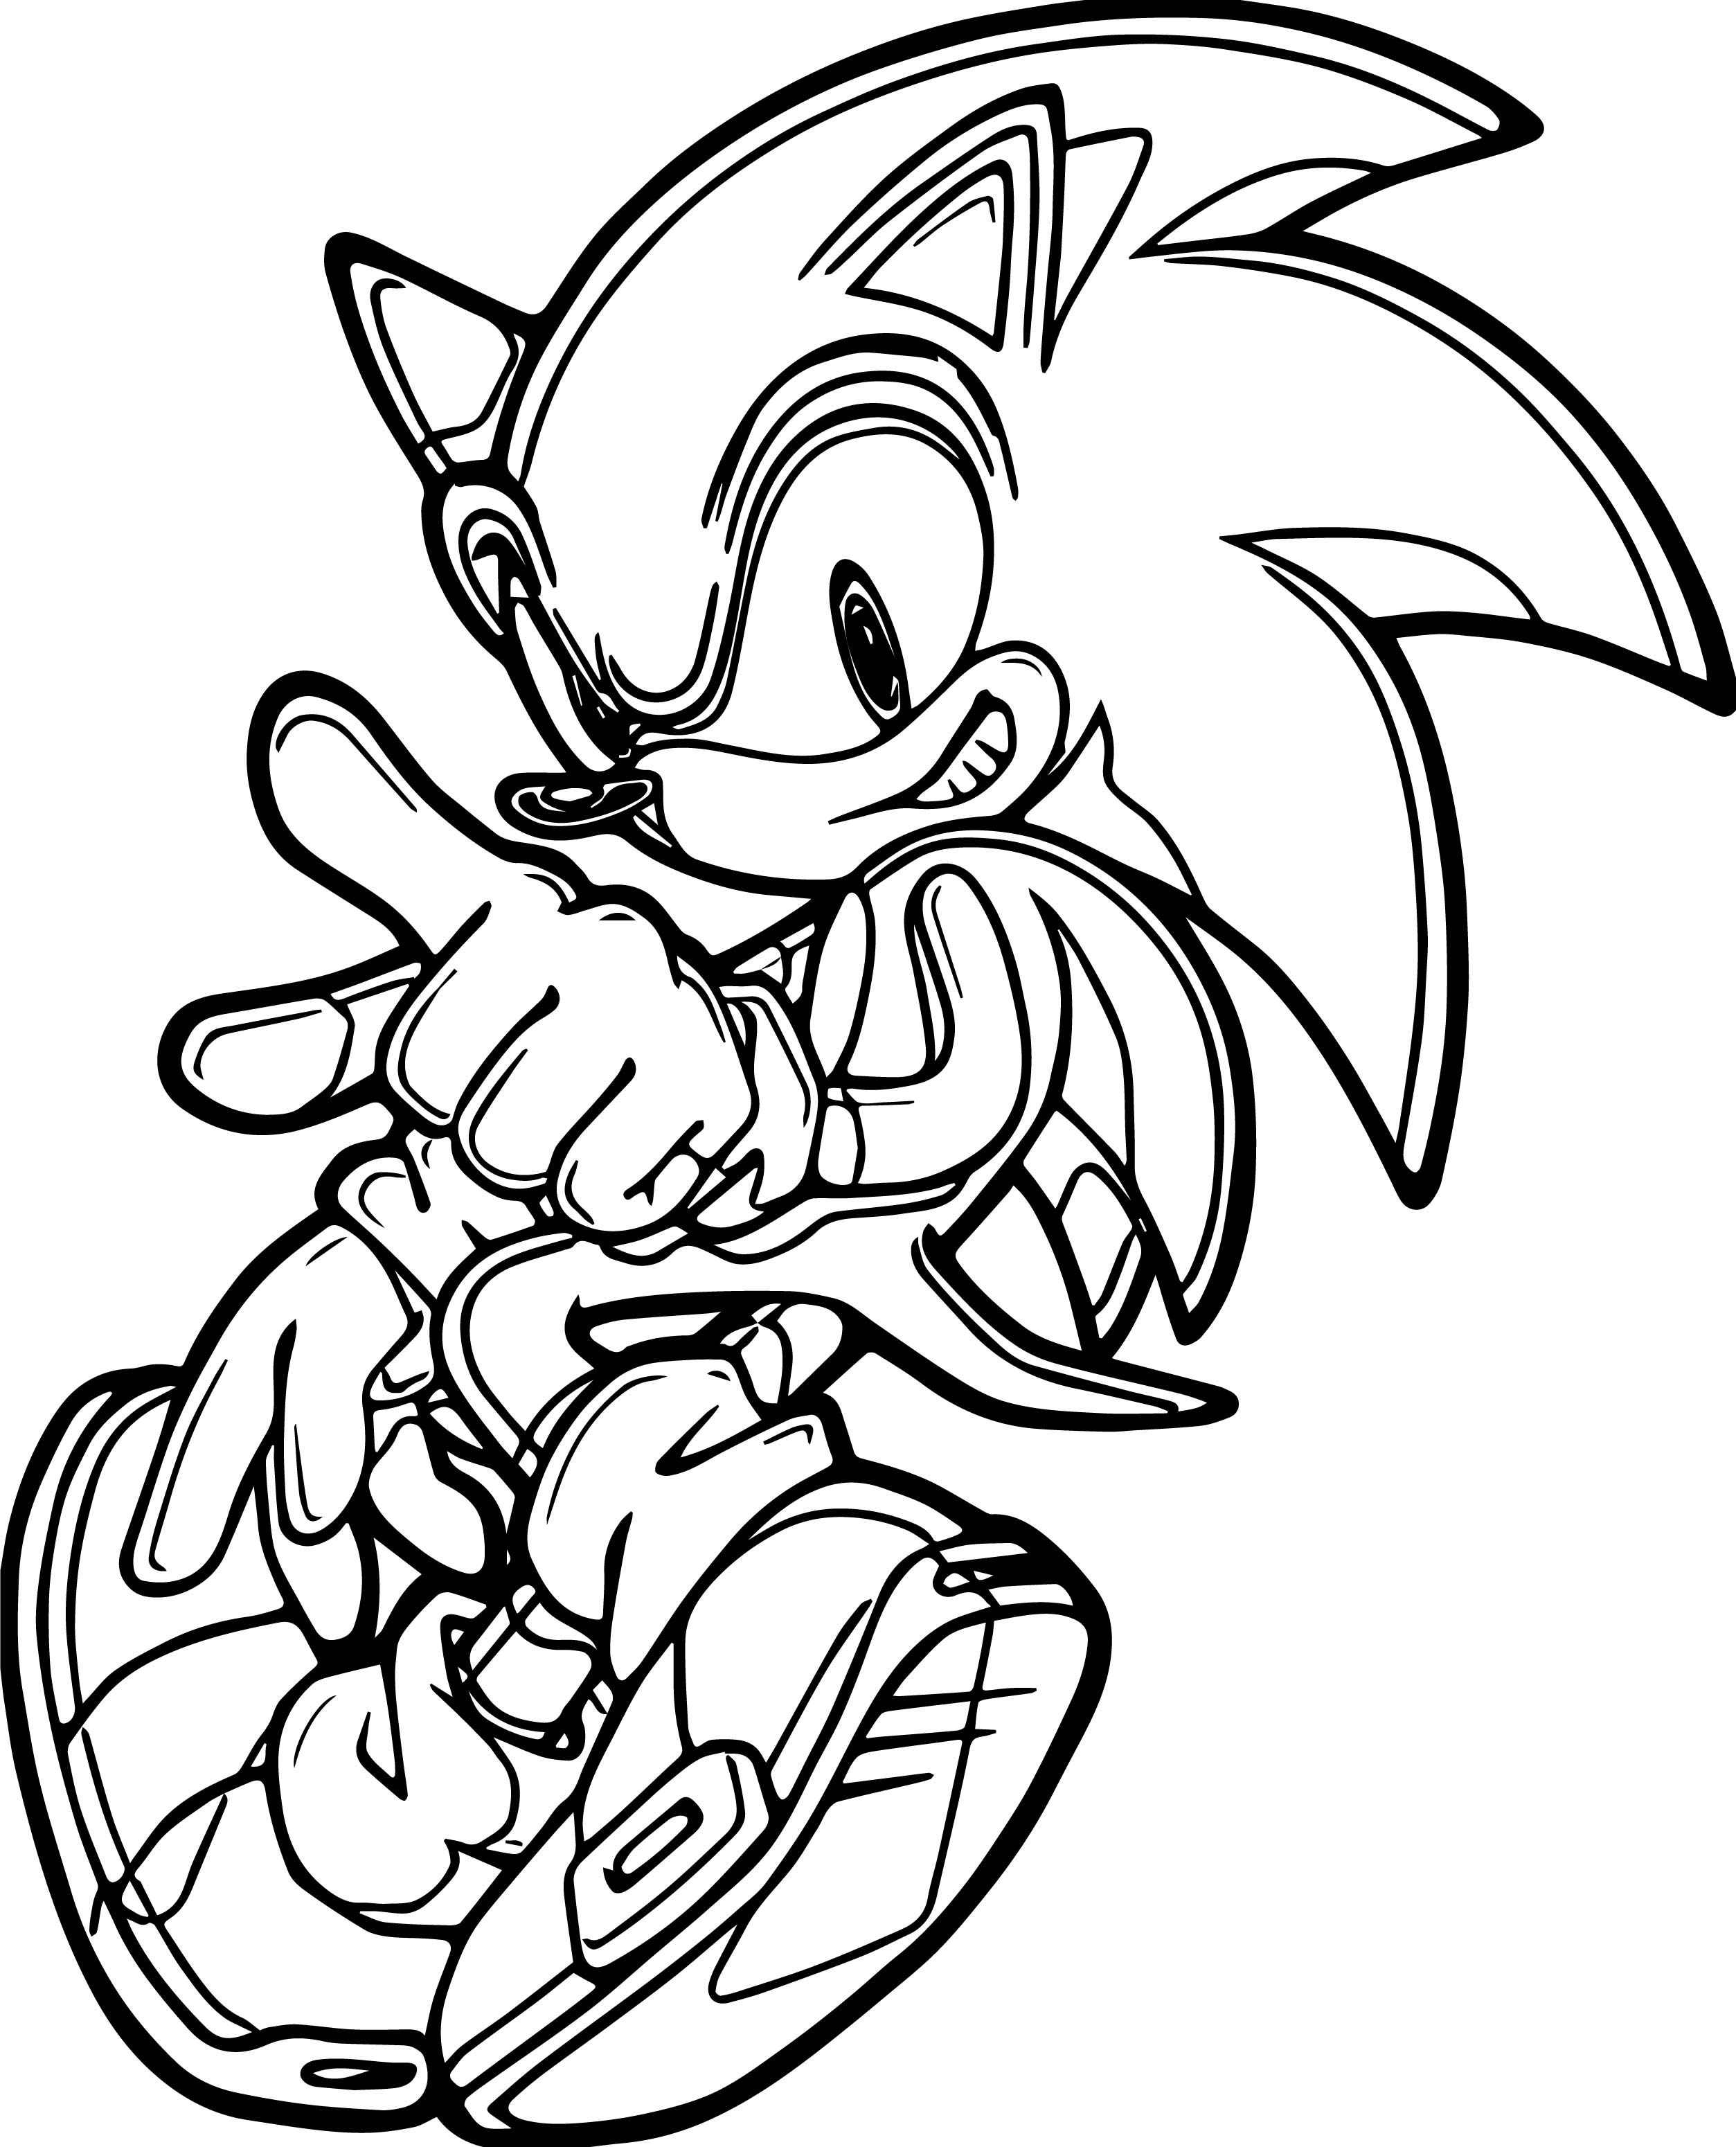 sonic the hedgehog coloring page top 20 printable sonic the hedgehog coloring pages coloring sonic page hedgehog the